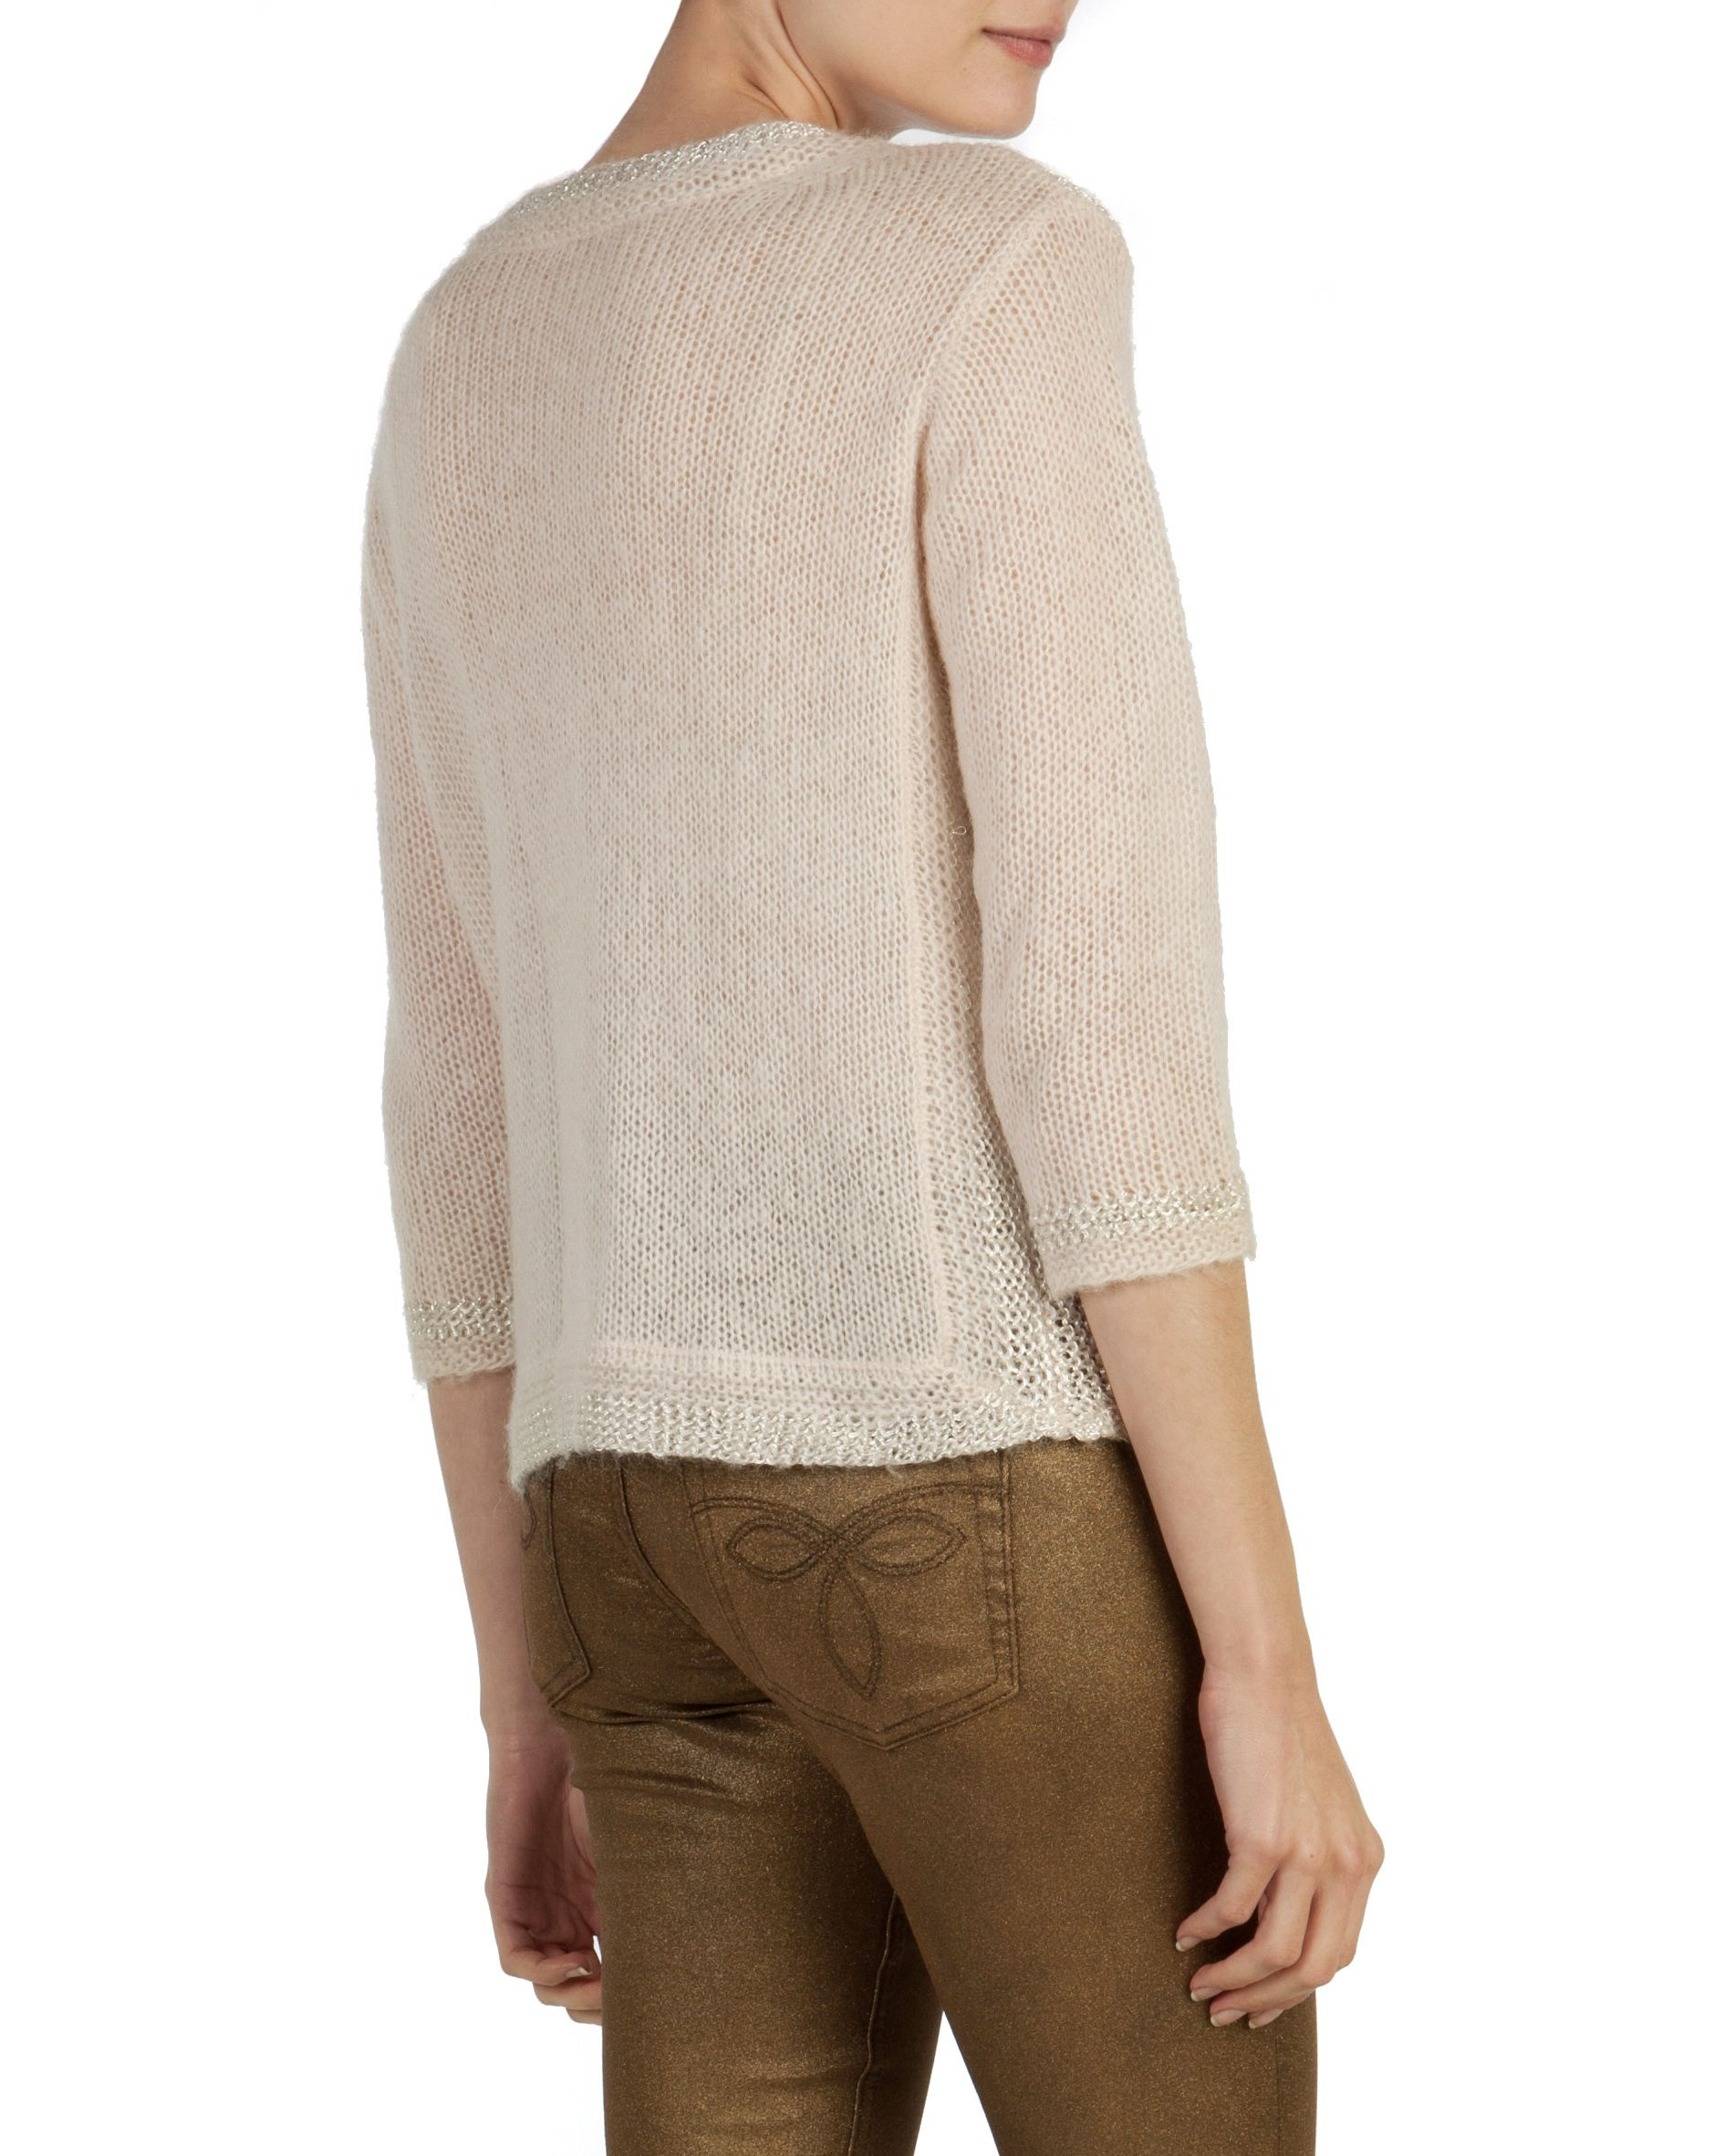 Jevini mohair metallic sweater